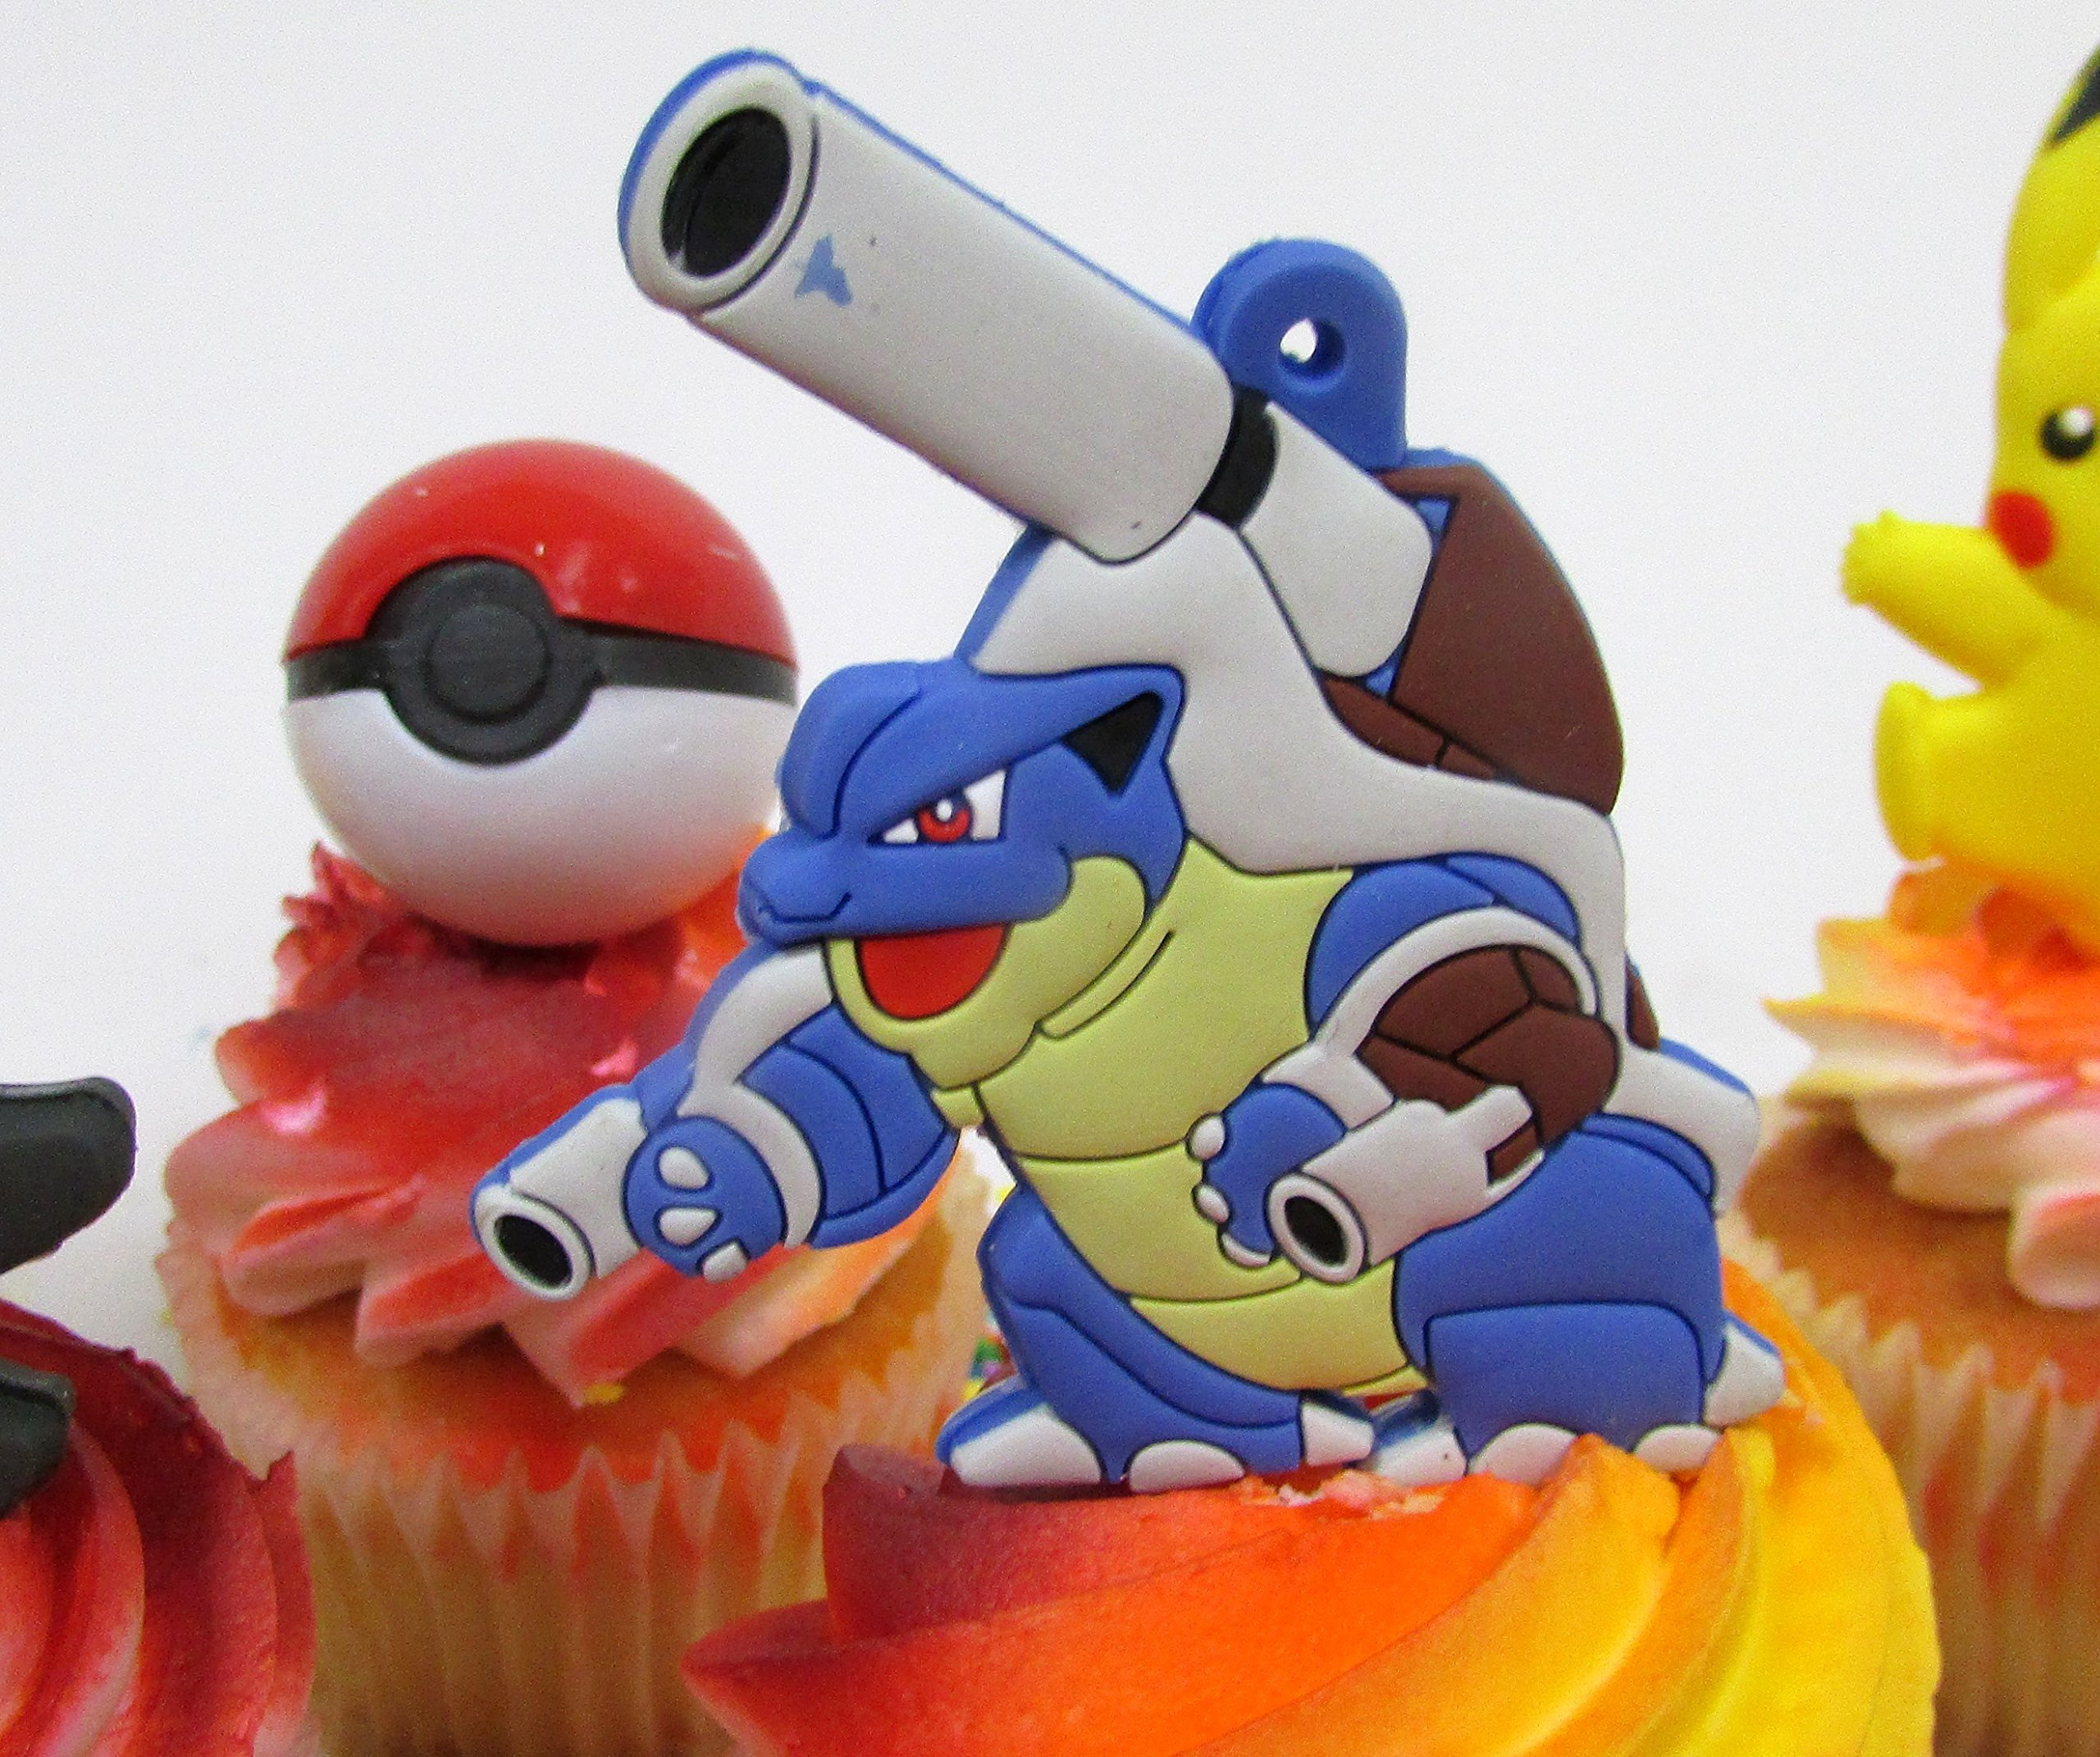 Pikachu and Friends Cupcake Topper Set with 6 Random Pocketmonster Characters and 6 Poke Balls by Cupcake Topper (Image #4)